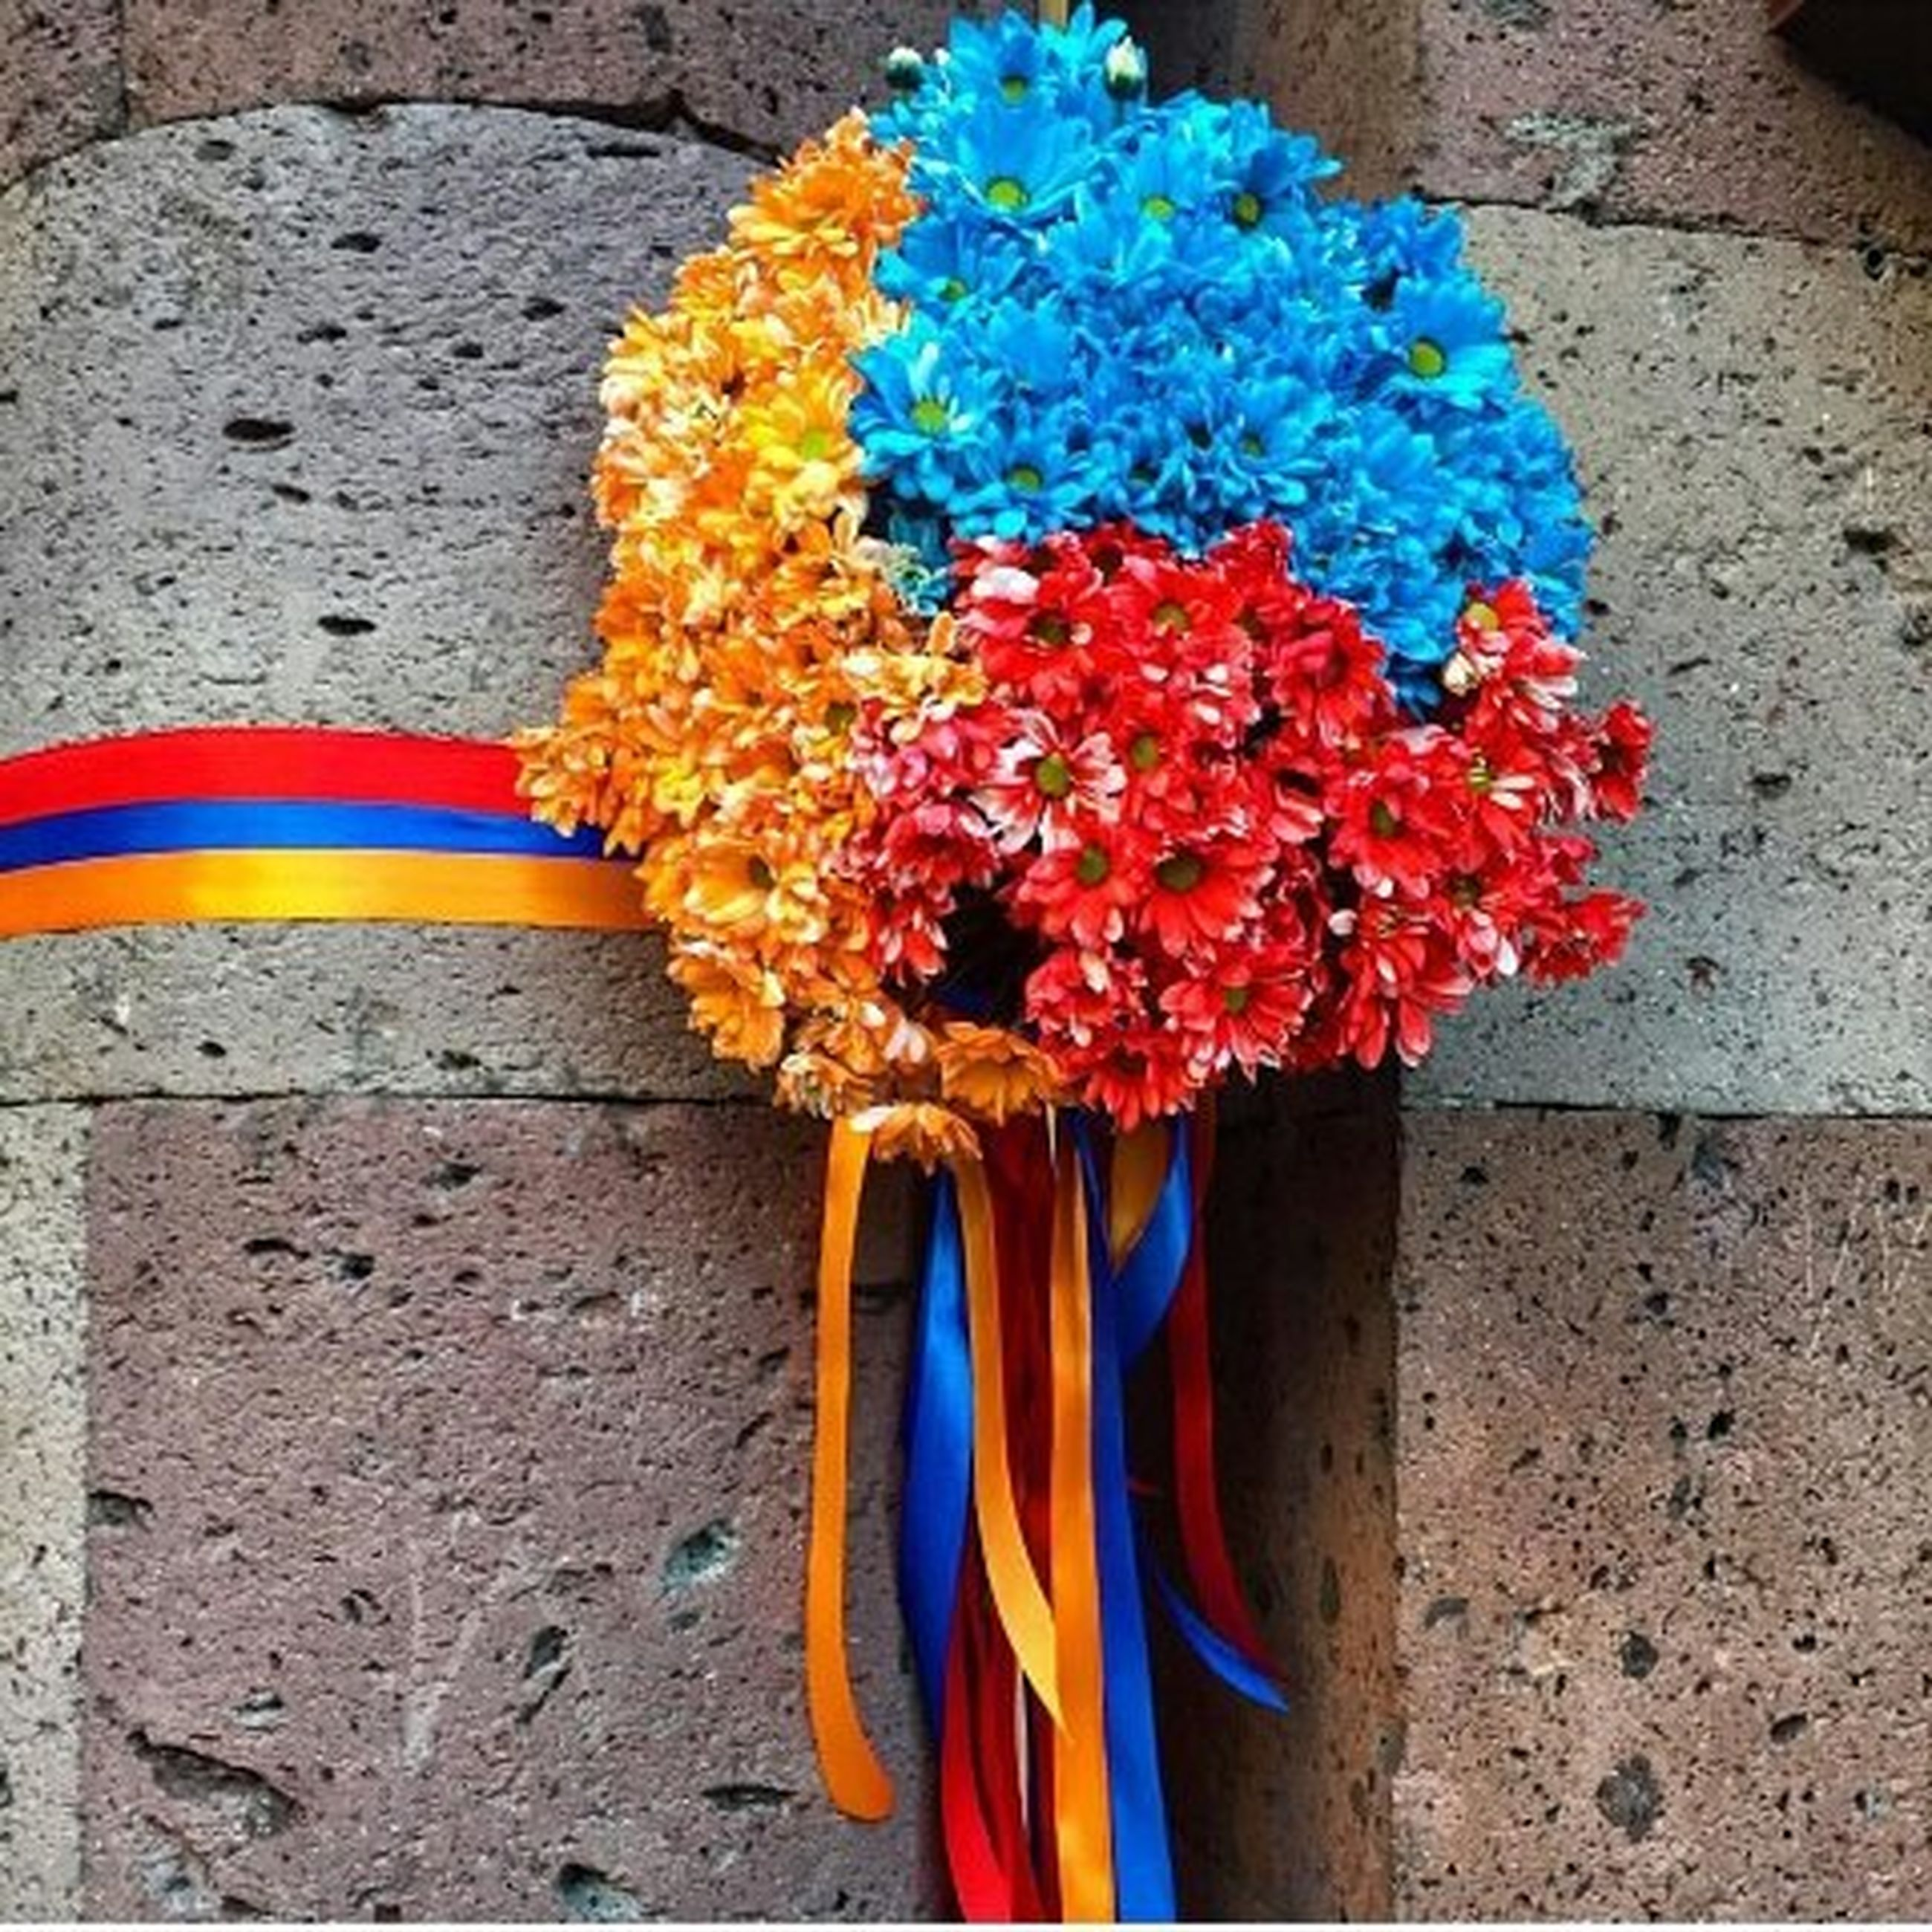 multi colored, flower, colorful, high angle view, blue, variation, yellow, close-up, street, red, wall - building feature, day, outdoors, no people, petal, striped, art and craft, vibrant color, fragility, art